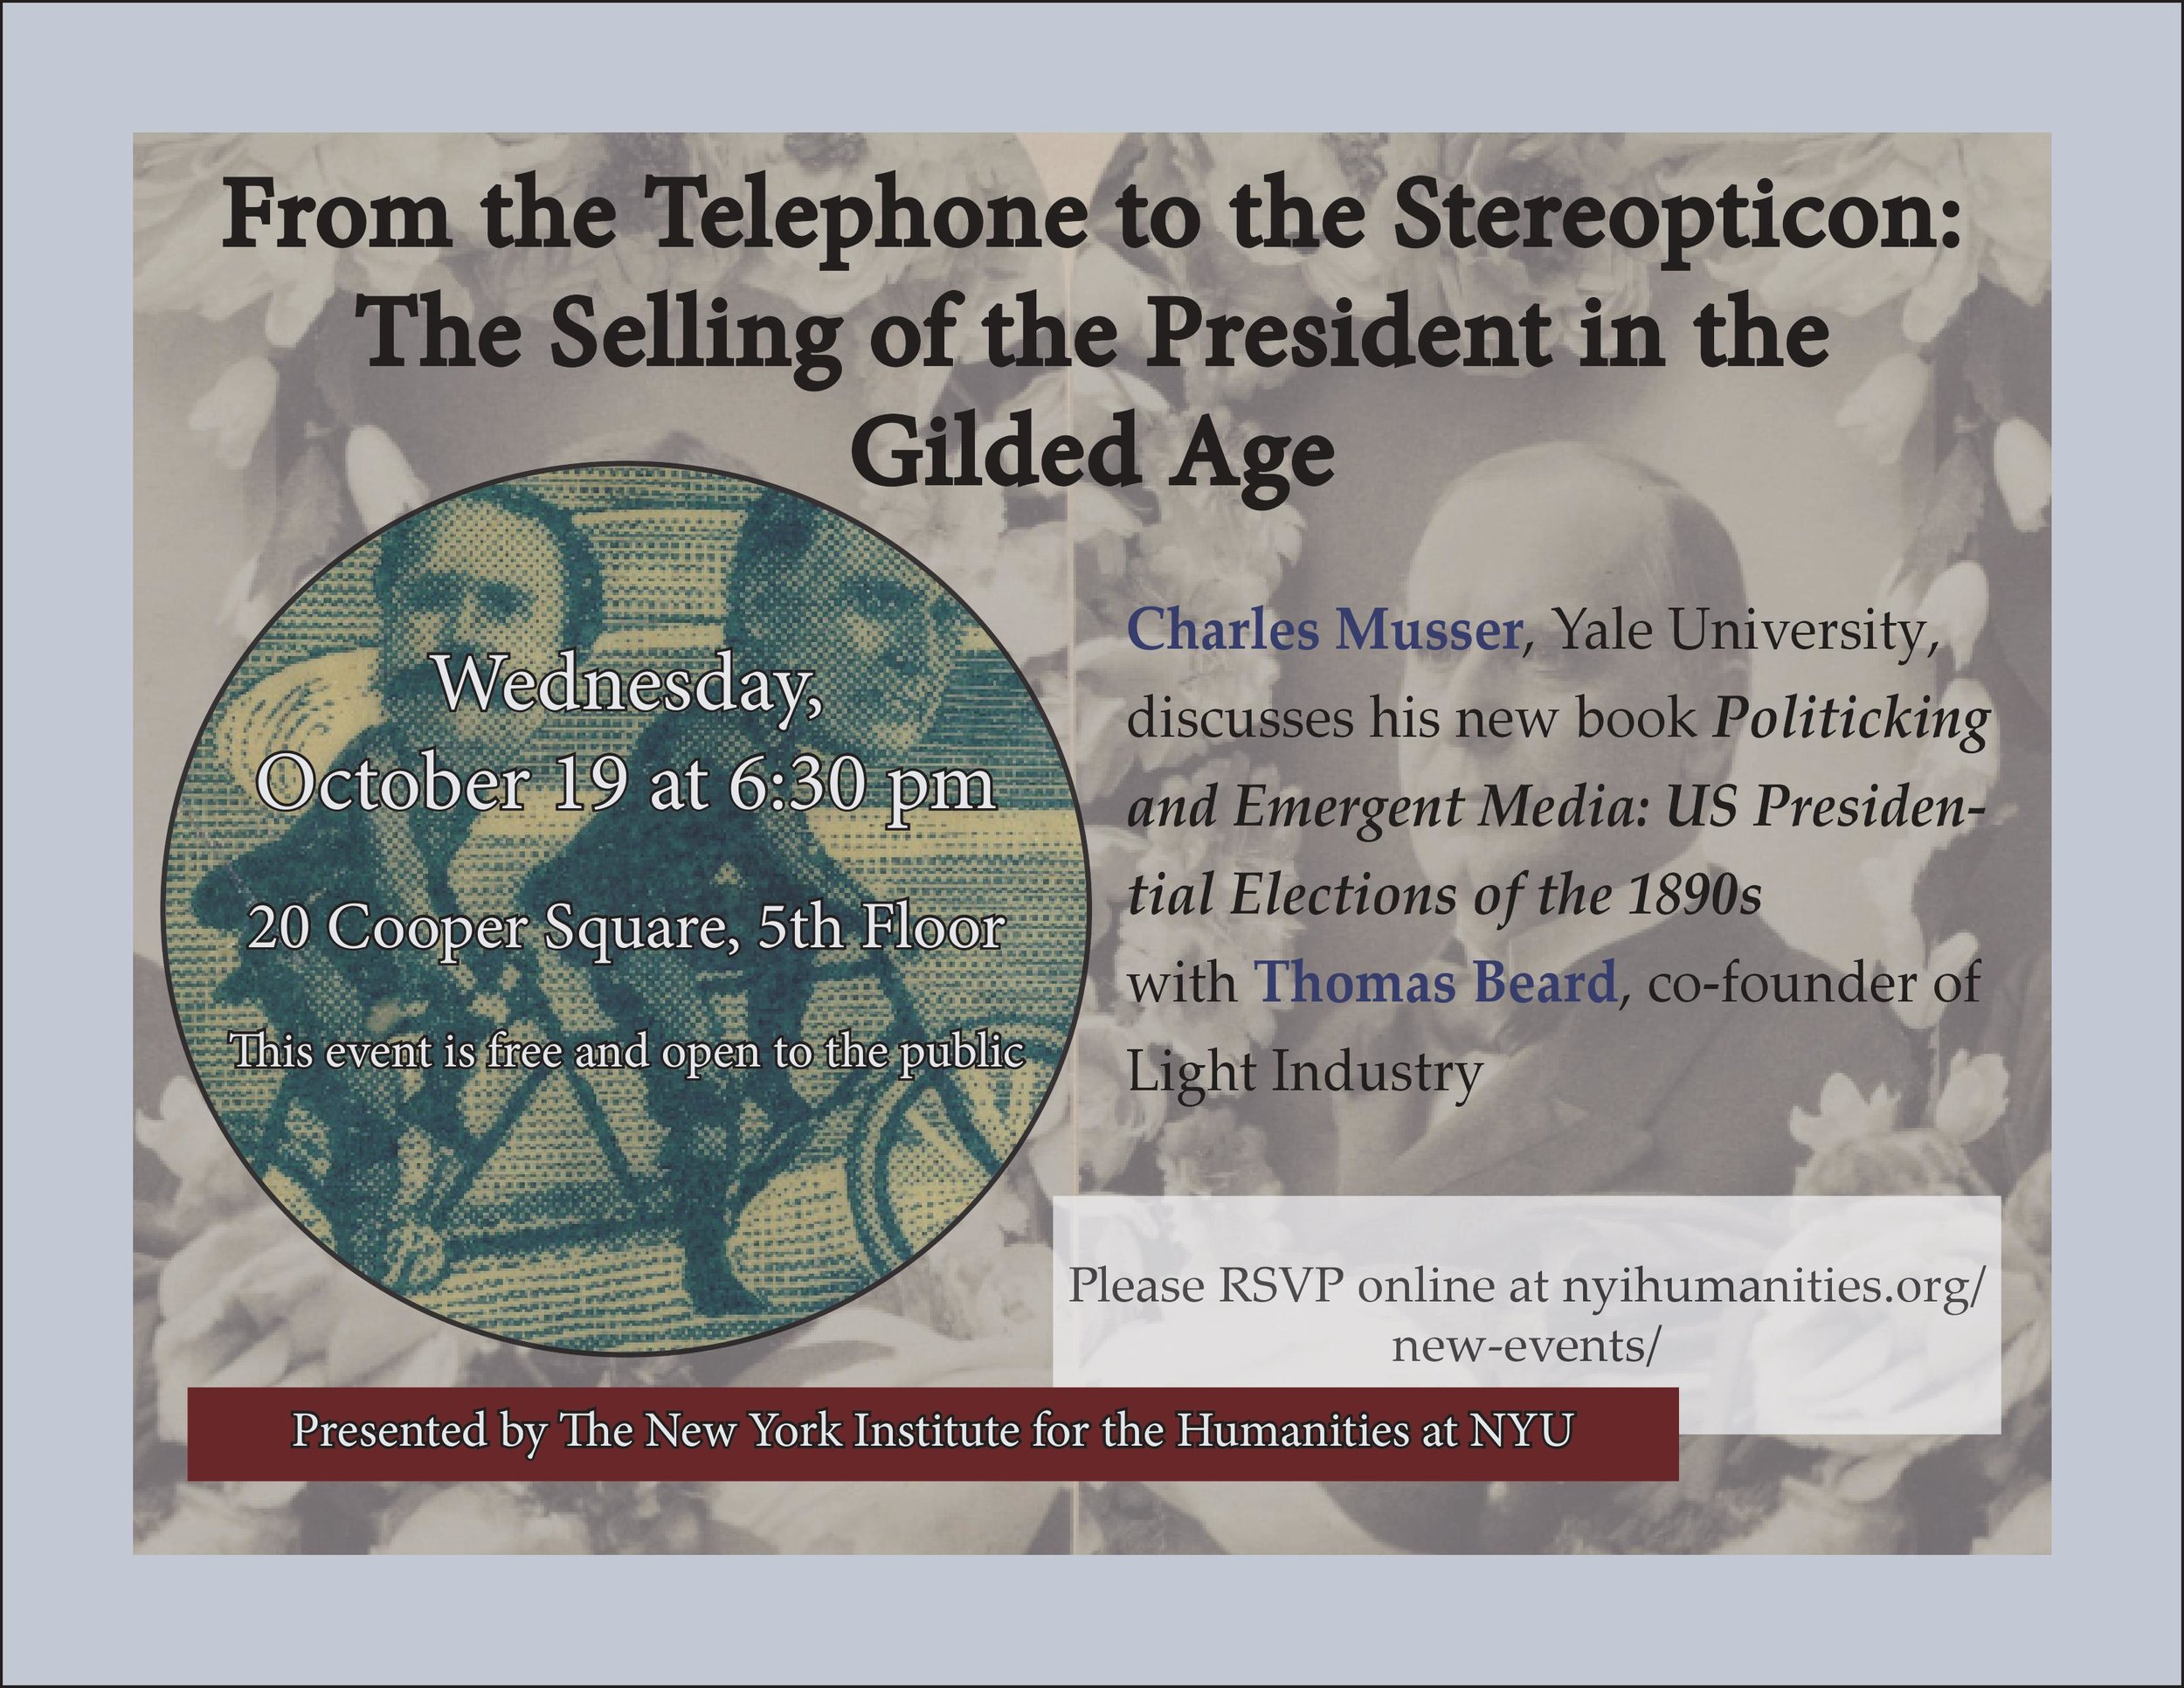 Flyer for the event  From the Telephone to the Stereoticon